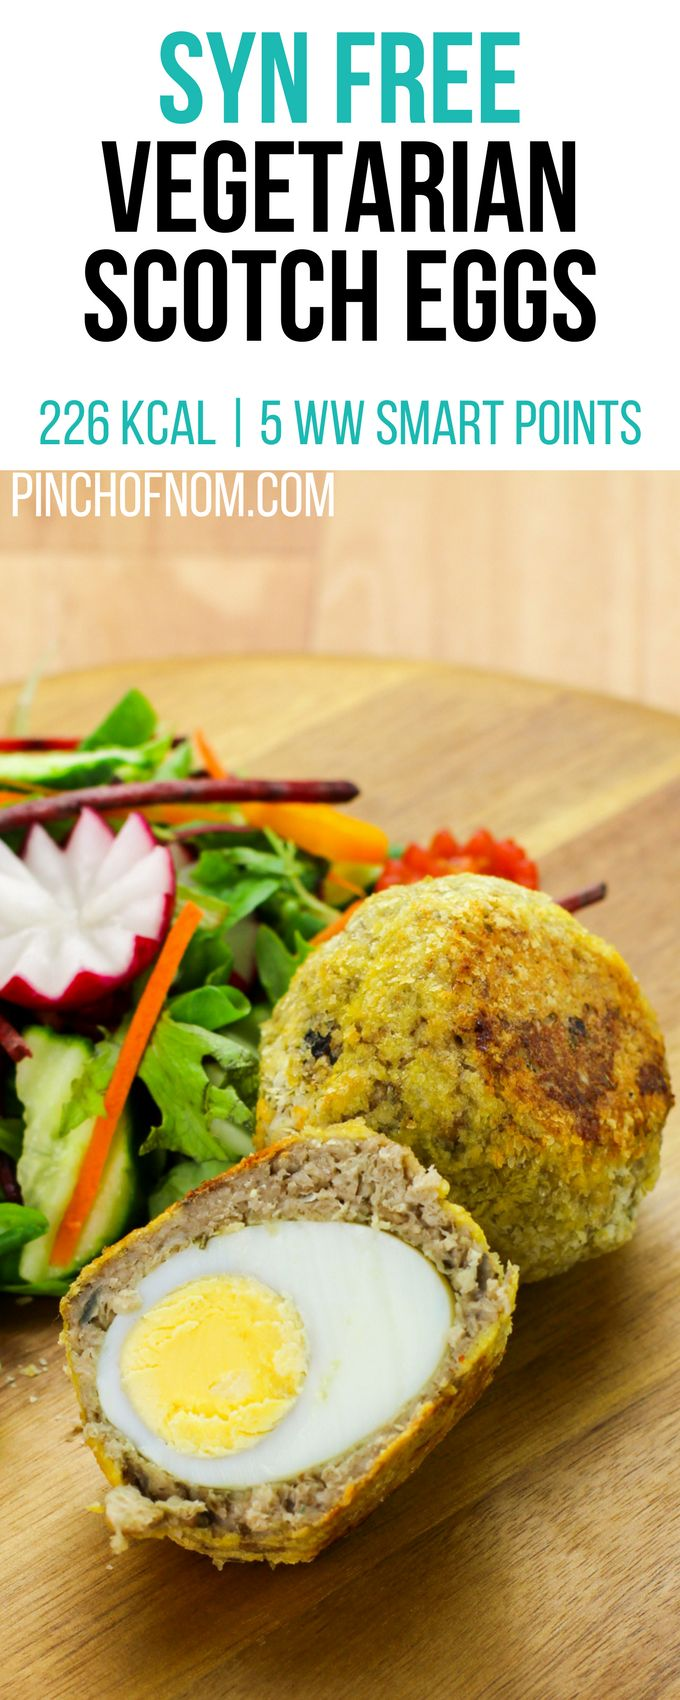 Syn Free Vegetarian Scotch Eggs | Pinch Of Nom Slimming World Recipes     226 kcal | Syn Free | 5 Weight Watchers Smart Points